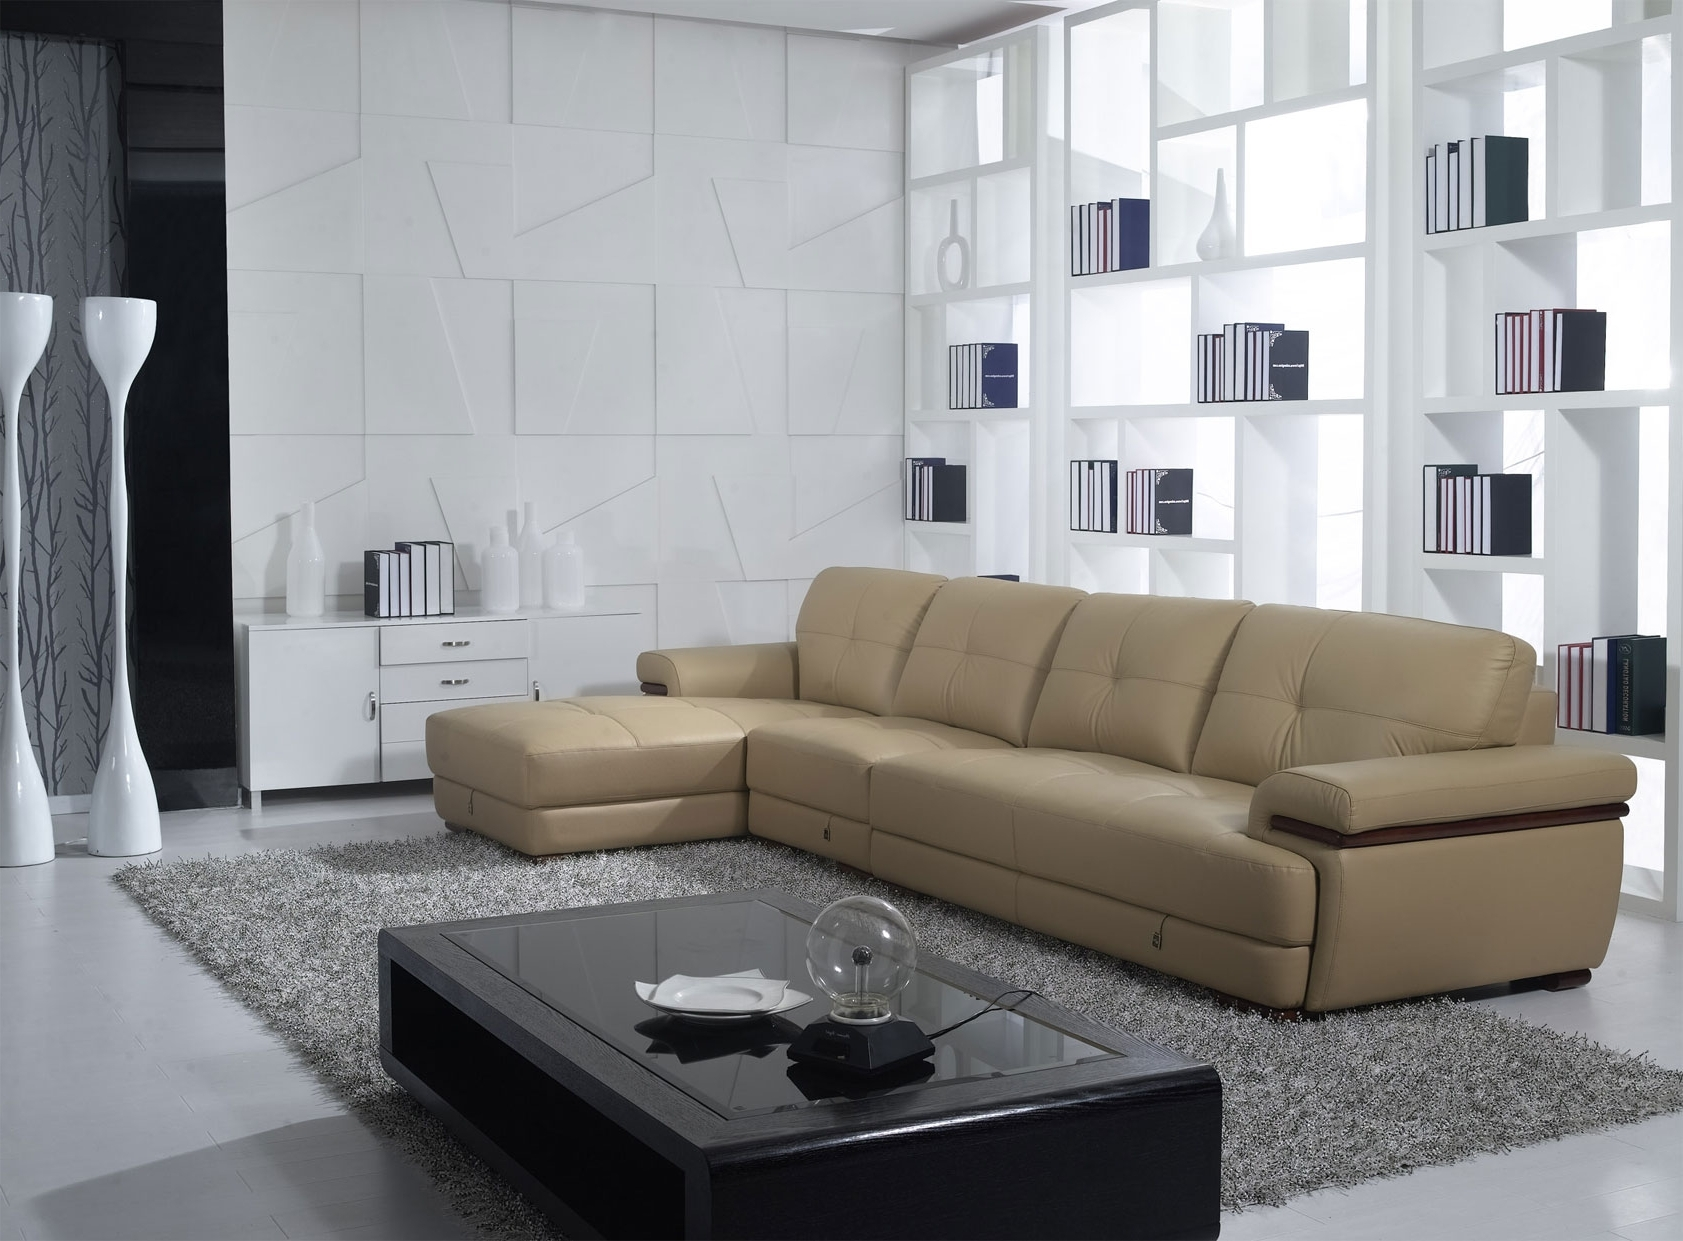 High Quality Sectional Sofas With Current Fancy Quality Sectional Sofas 15 Sofas And Couches Ideas With (View 3 of 20)